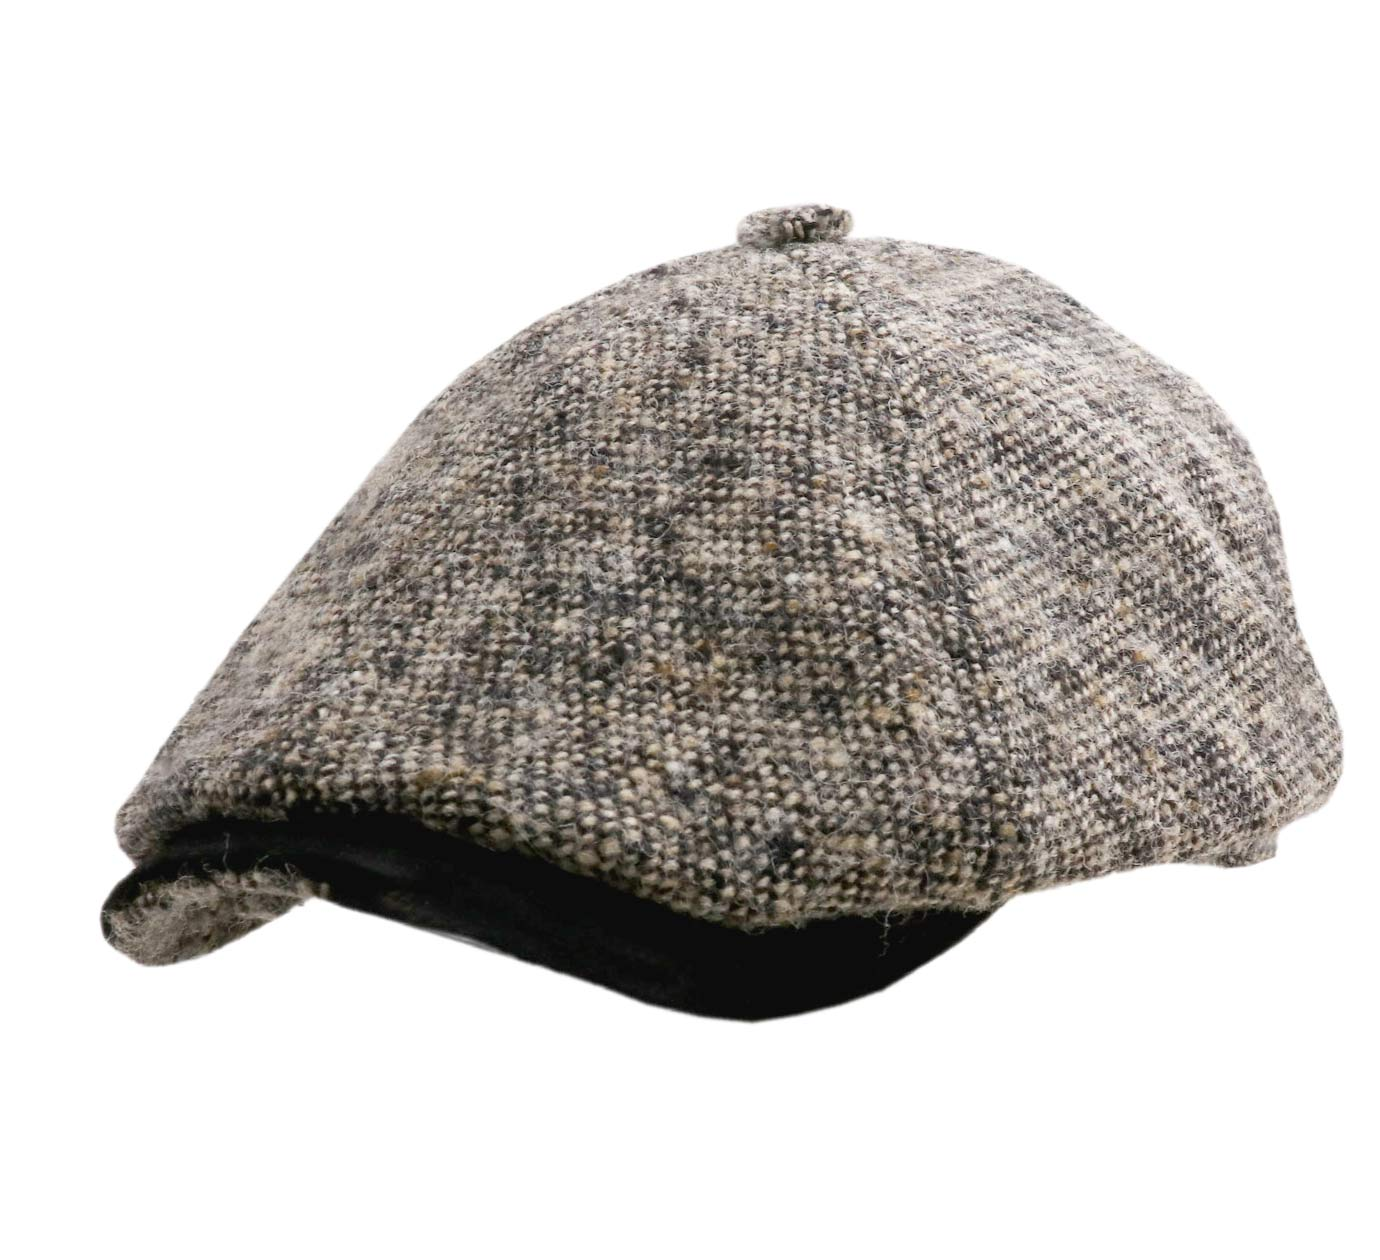 Béret, Casquette Plate Homme Brooklyn